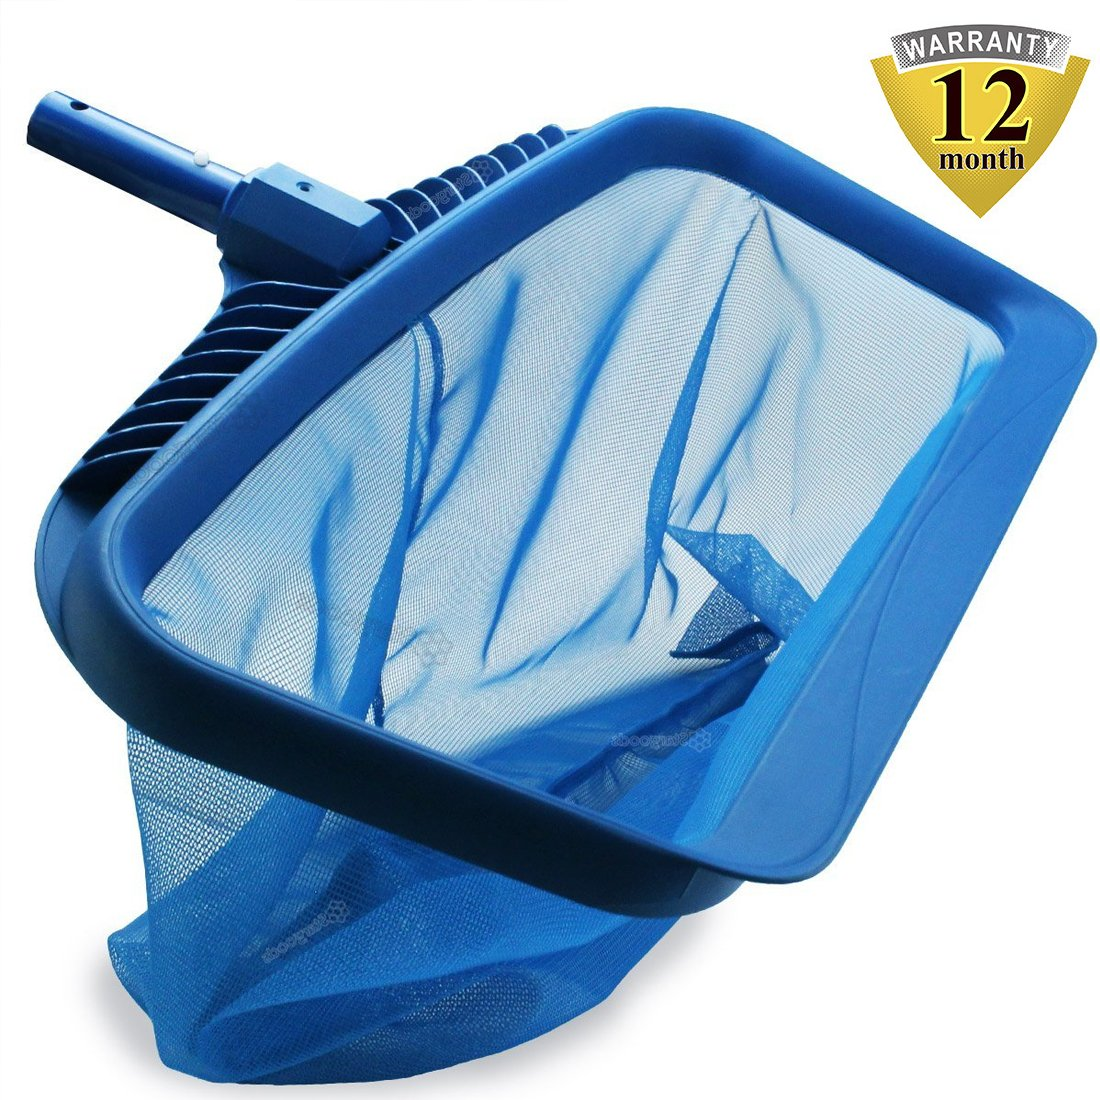 Pool Skimmers Heavy Duty Pool Nets 17'' Pool Rake, Modern Leaf Scoop - Easy Glide Low Drag Skimmer Scoop - Double Stitched Net Bag, Finer Mesh Netting for Smaller Particles Fast Scoop - Blue